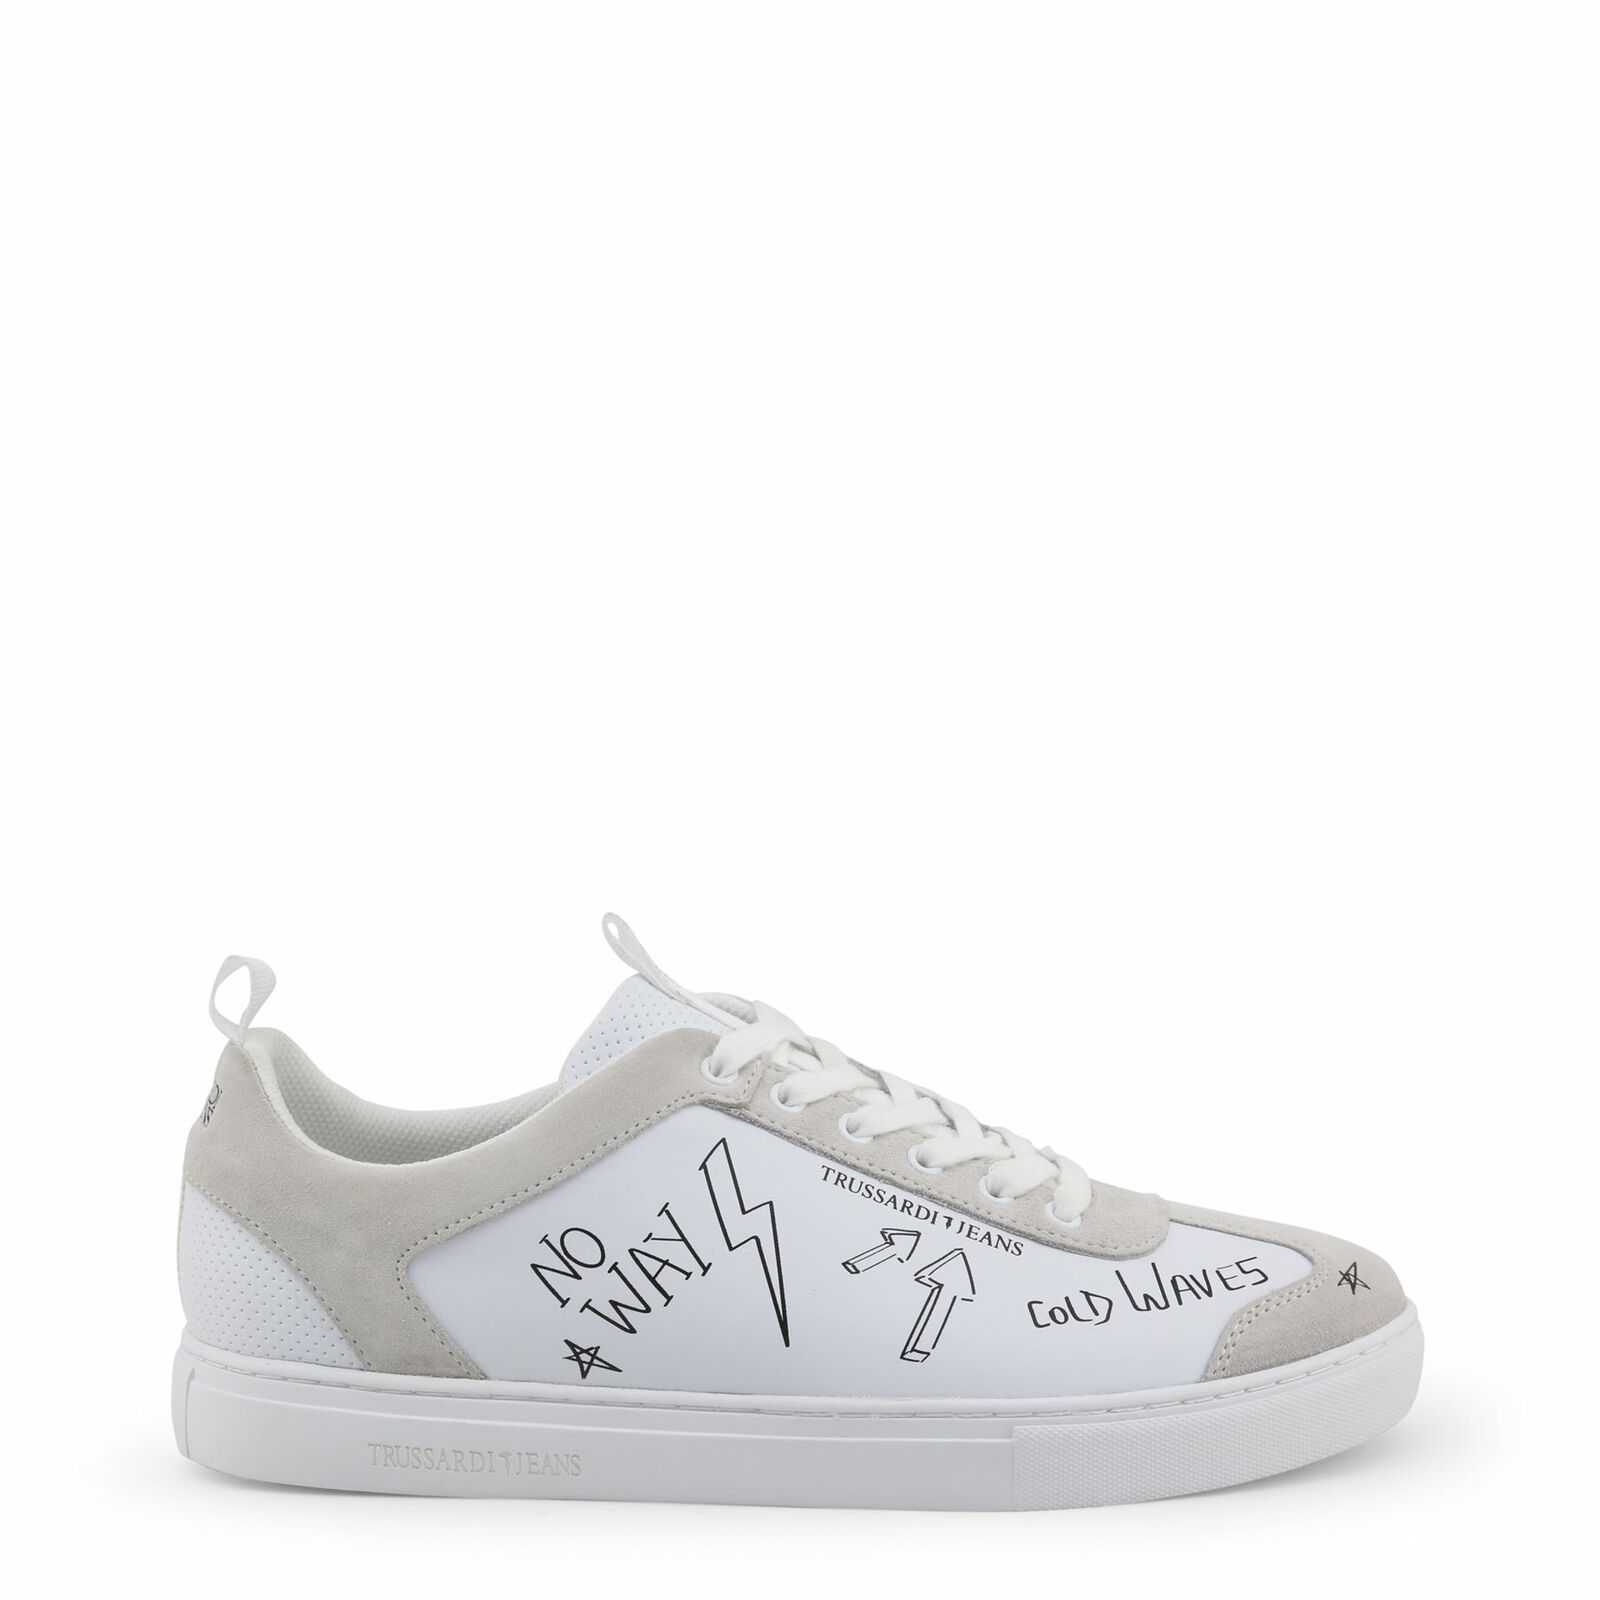 Trussardi Men's White Low-Top Sneakers Lace-Up Classic Court shoes